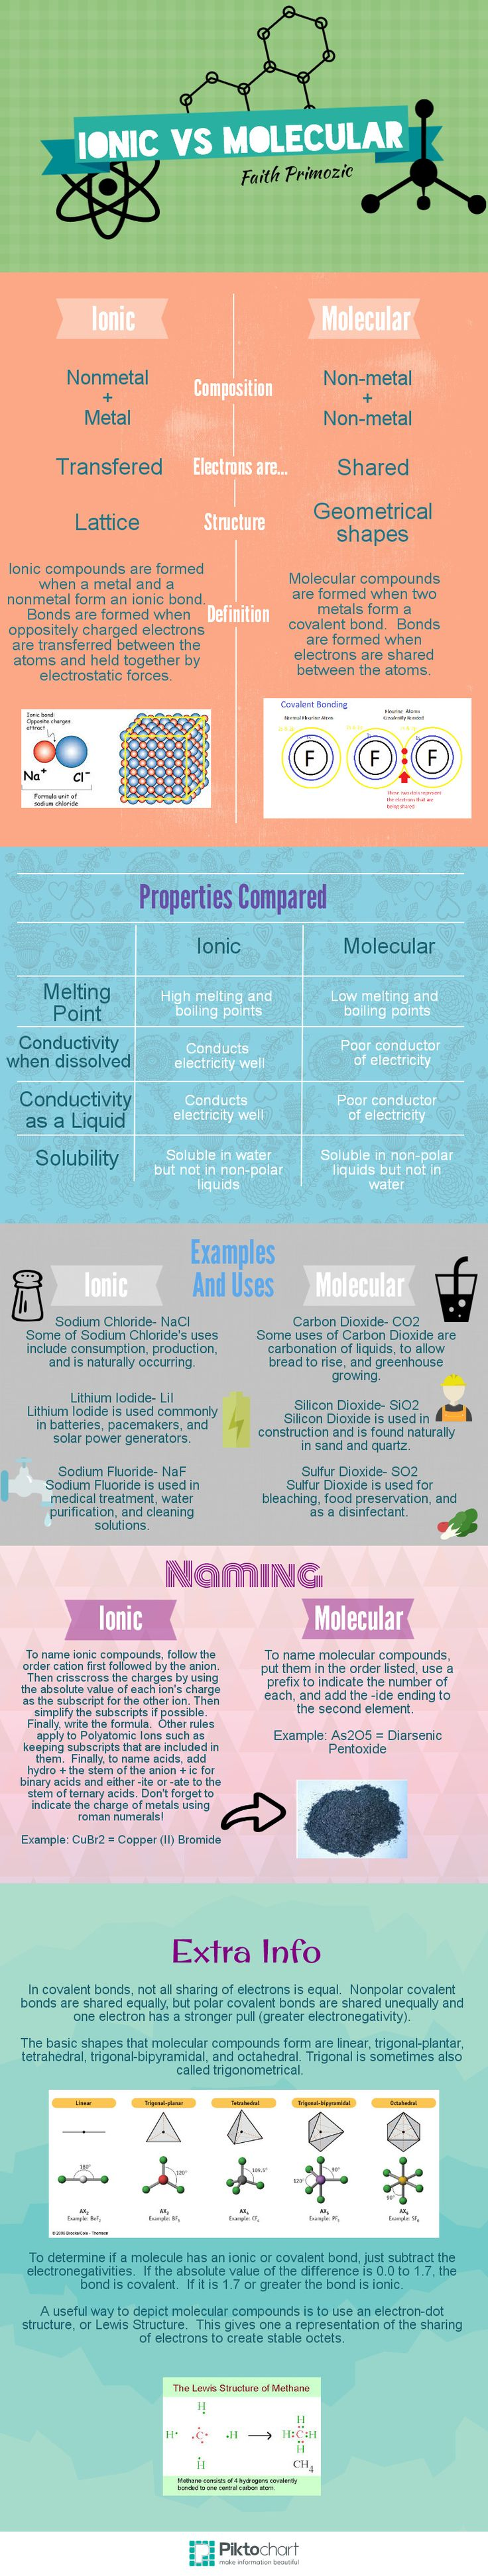 best ideas about chemistry help chemistry ionic and molecular compounds infographic misses out giant covalent yet lists sio2 as covalent example